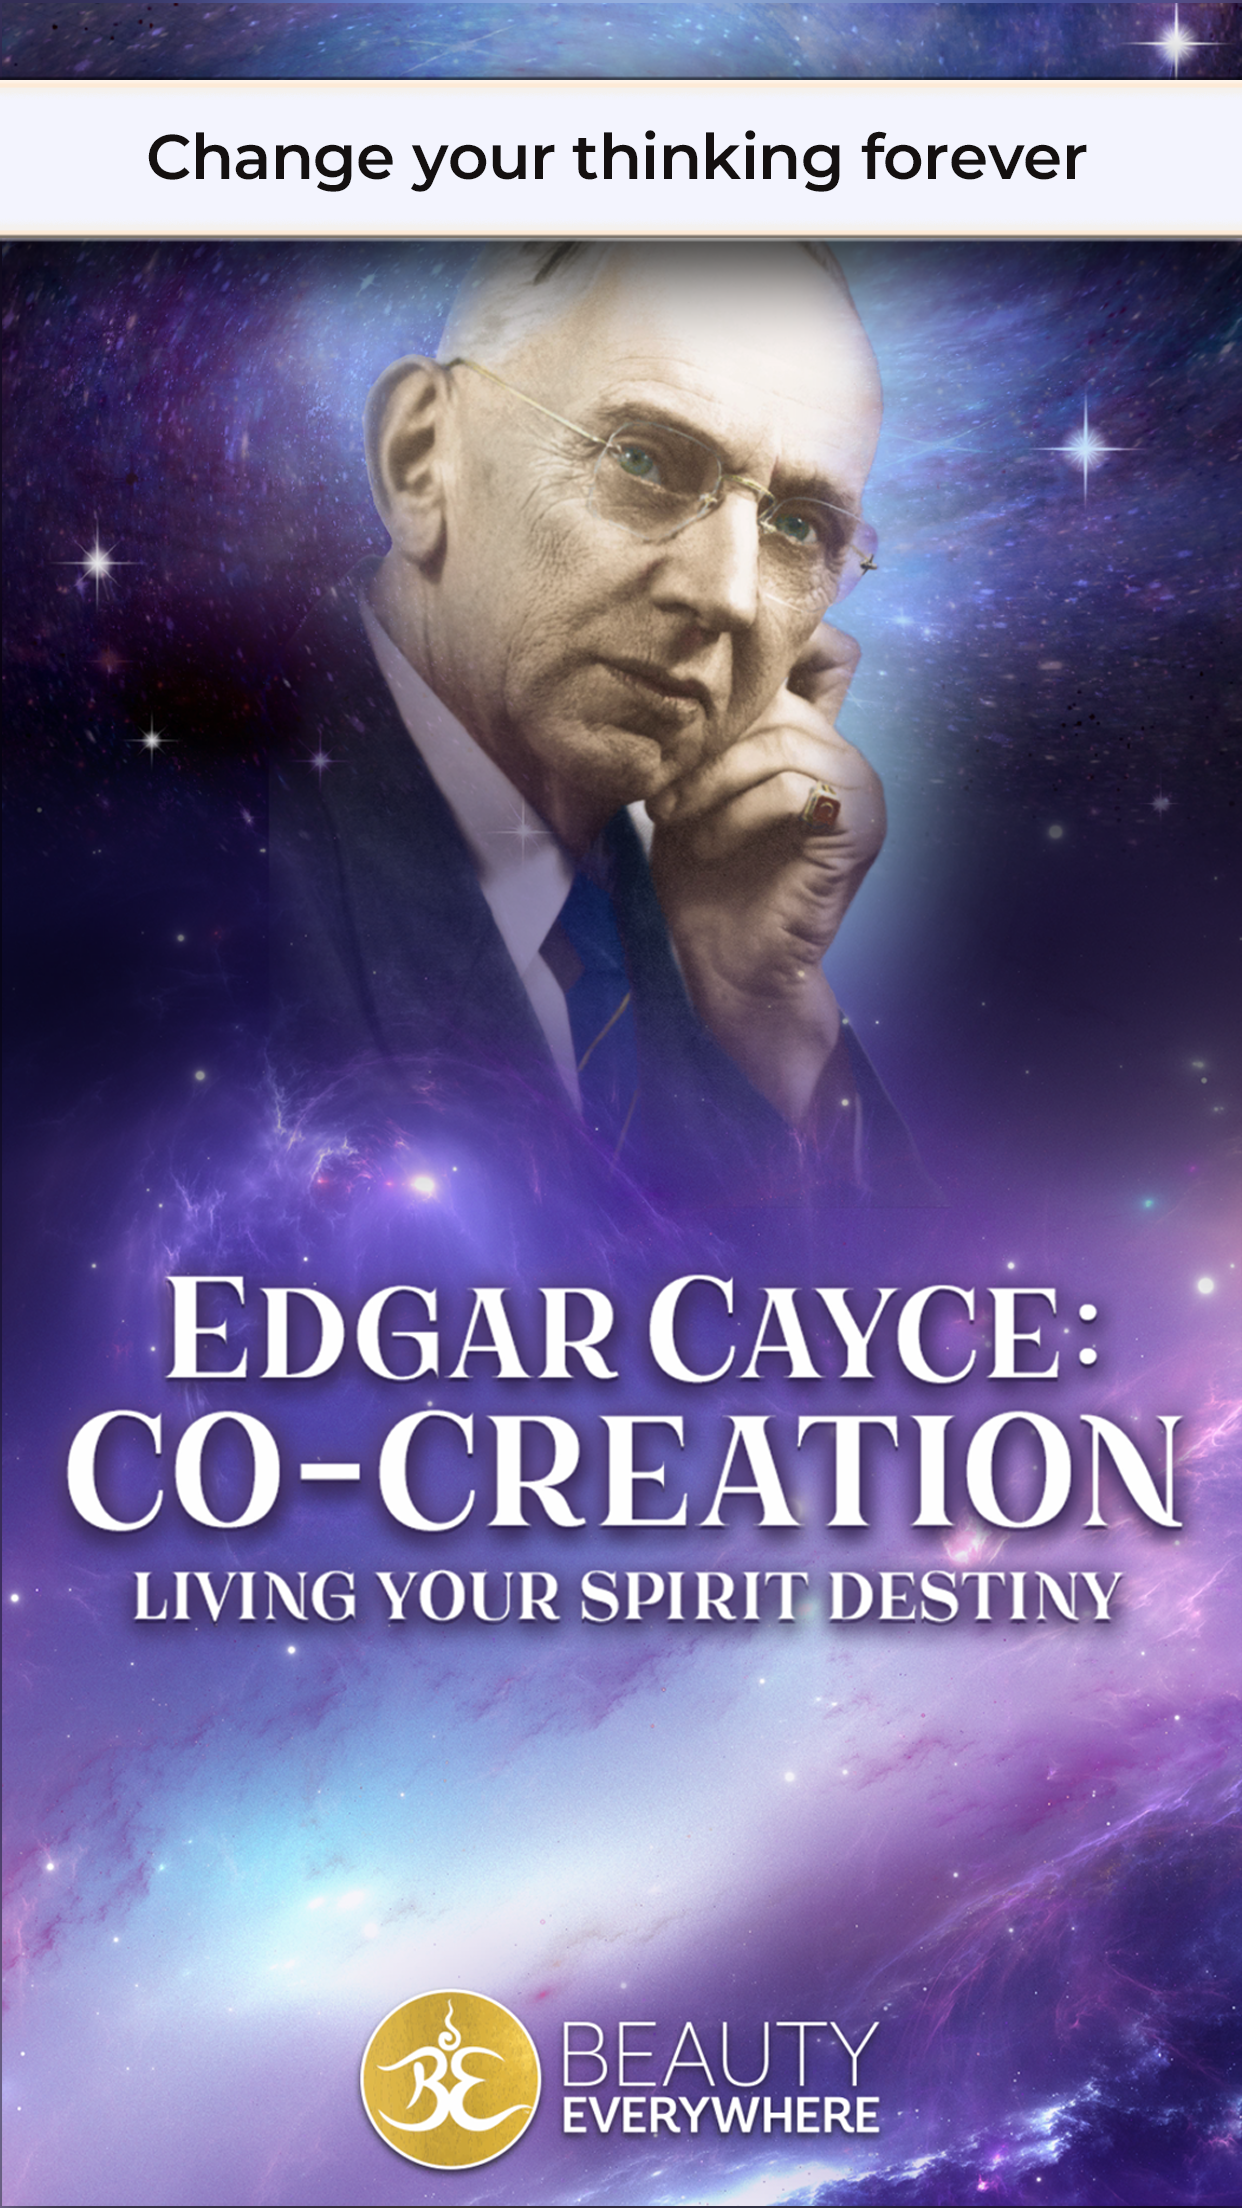 Edgar Cayce: Co-Creation